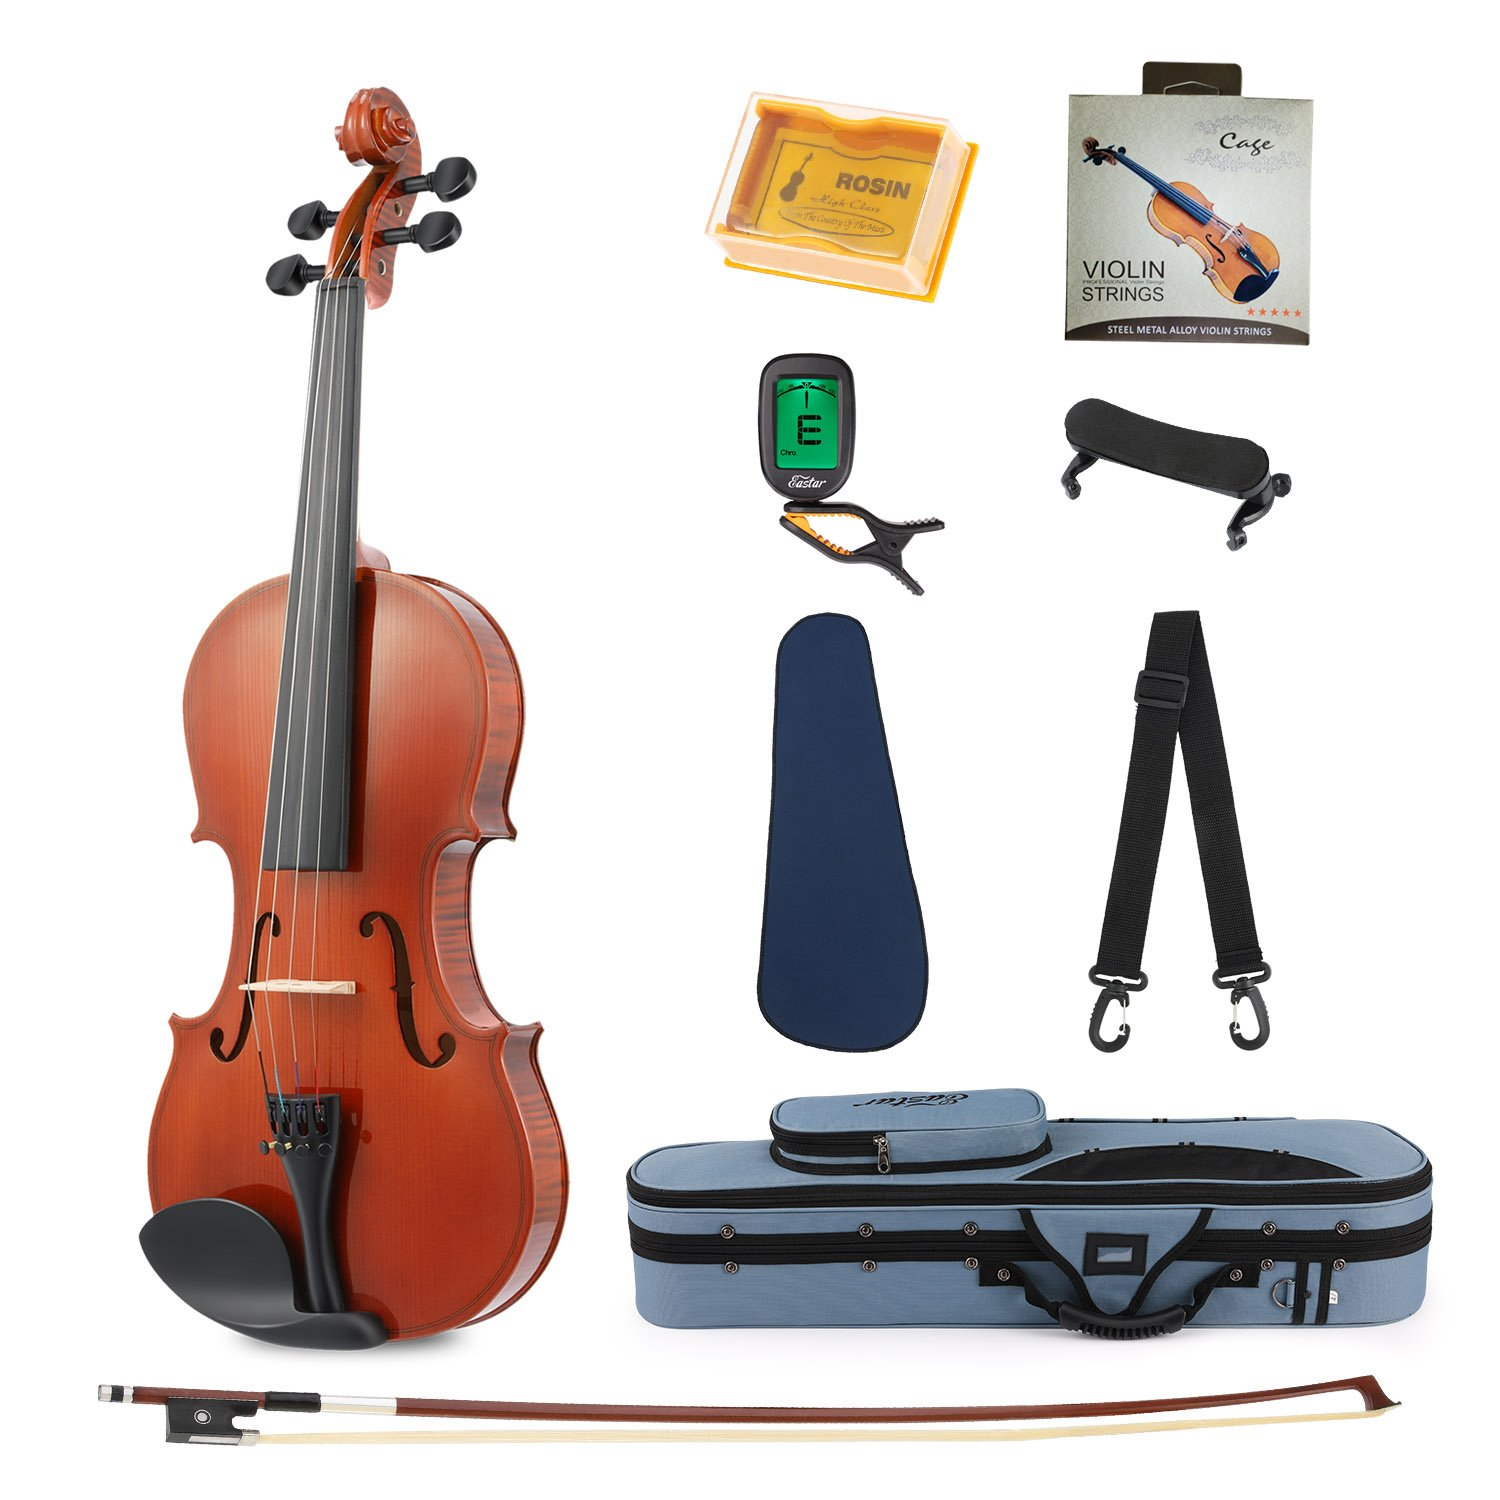 Eastar EVA-1 Full-Size 4/4 Violin Set For Beginner Student with Hard Case, Rosin, Shoulder Rest, Bow, Clip-on Tuner and Extra Strings EB004+EB005